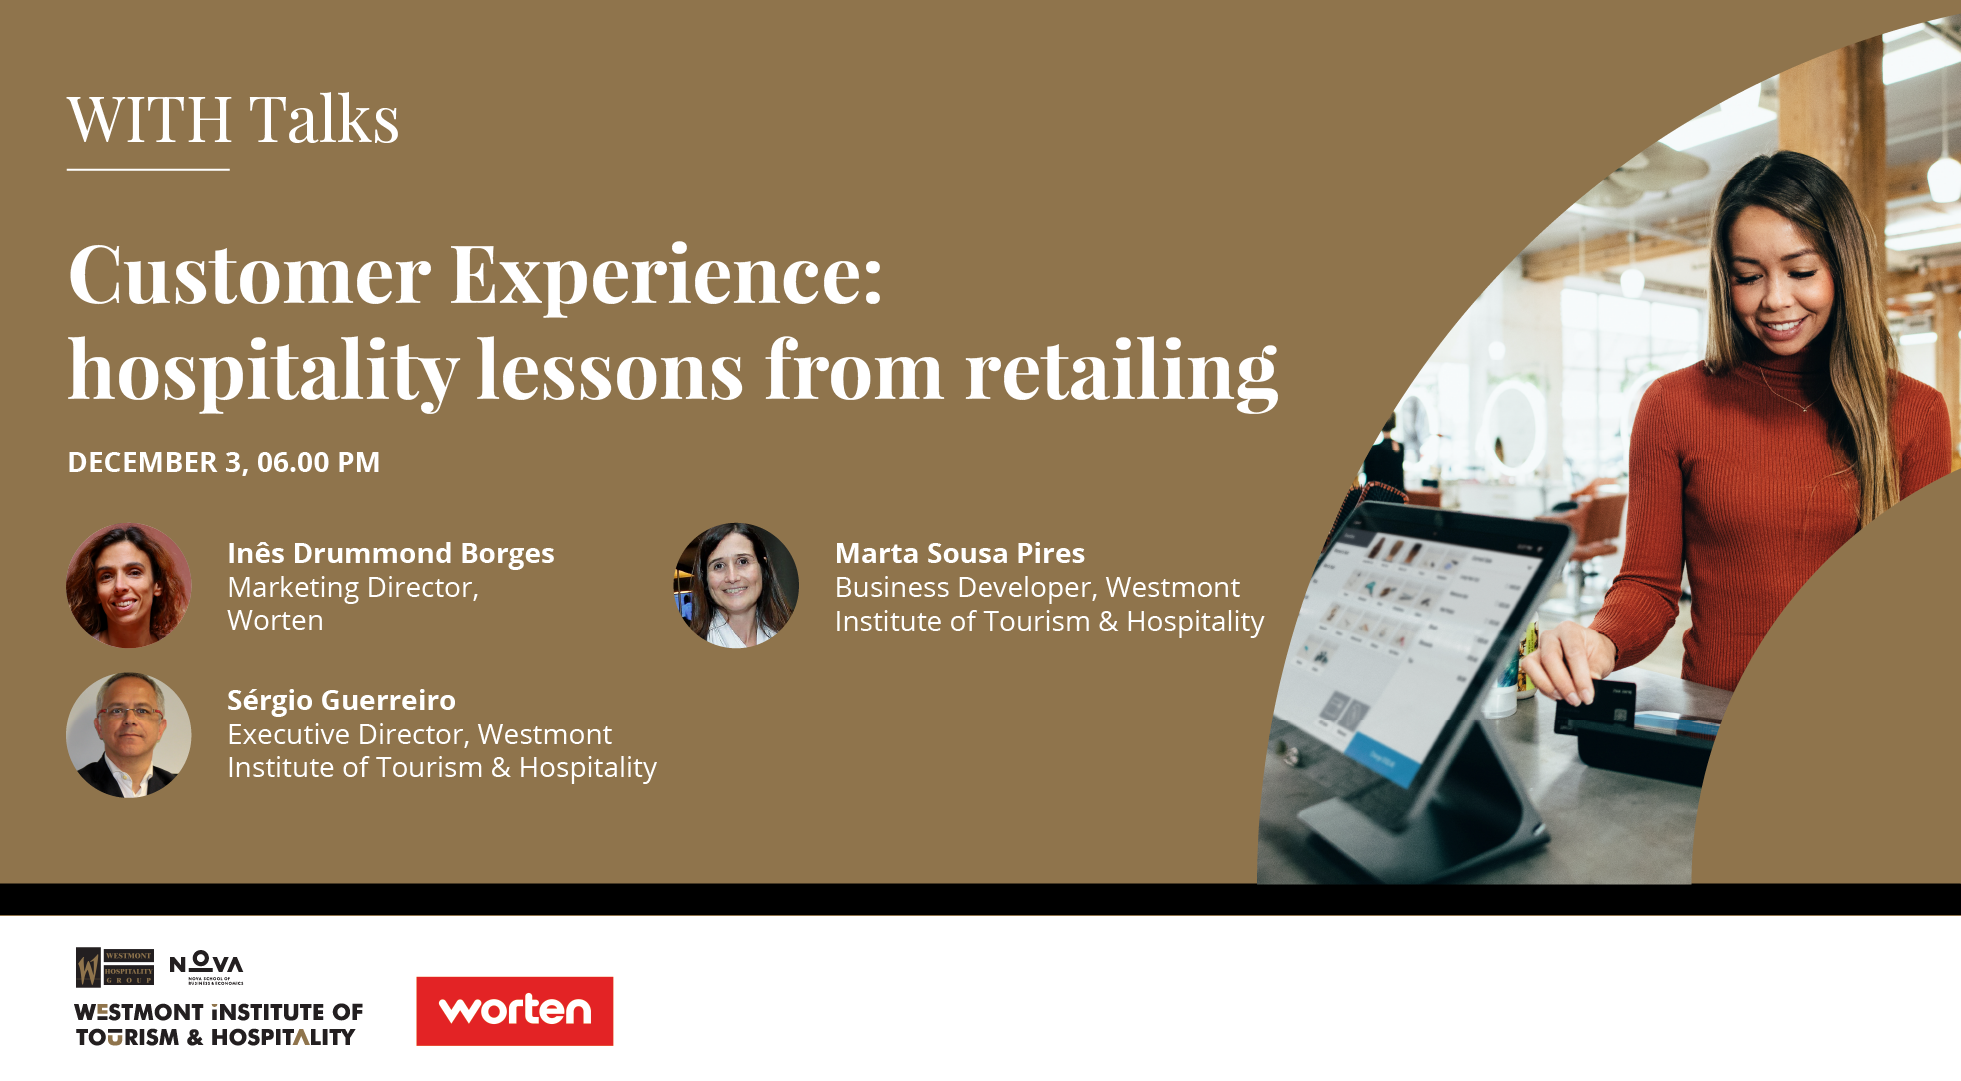 Customer Experience: Hospitality Lessons from Retailing